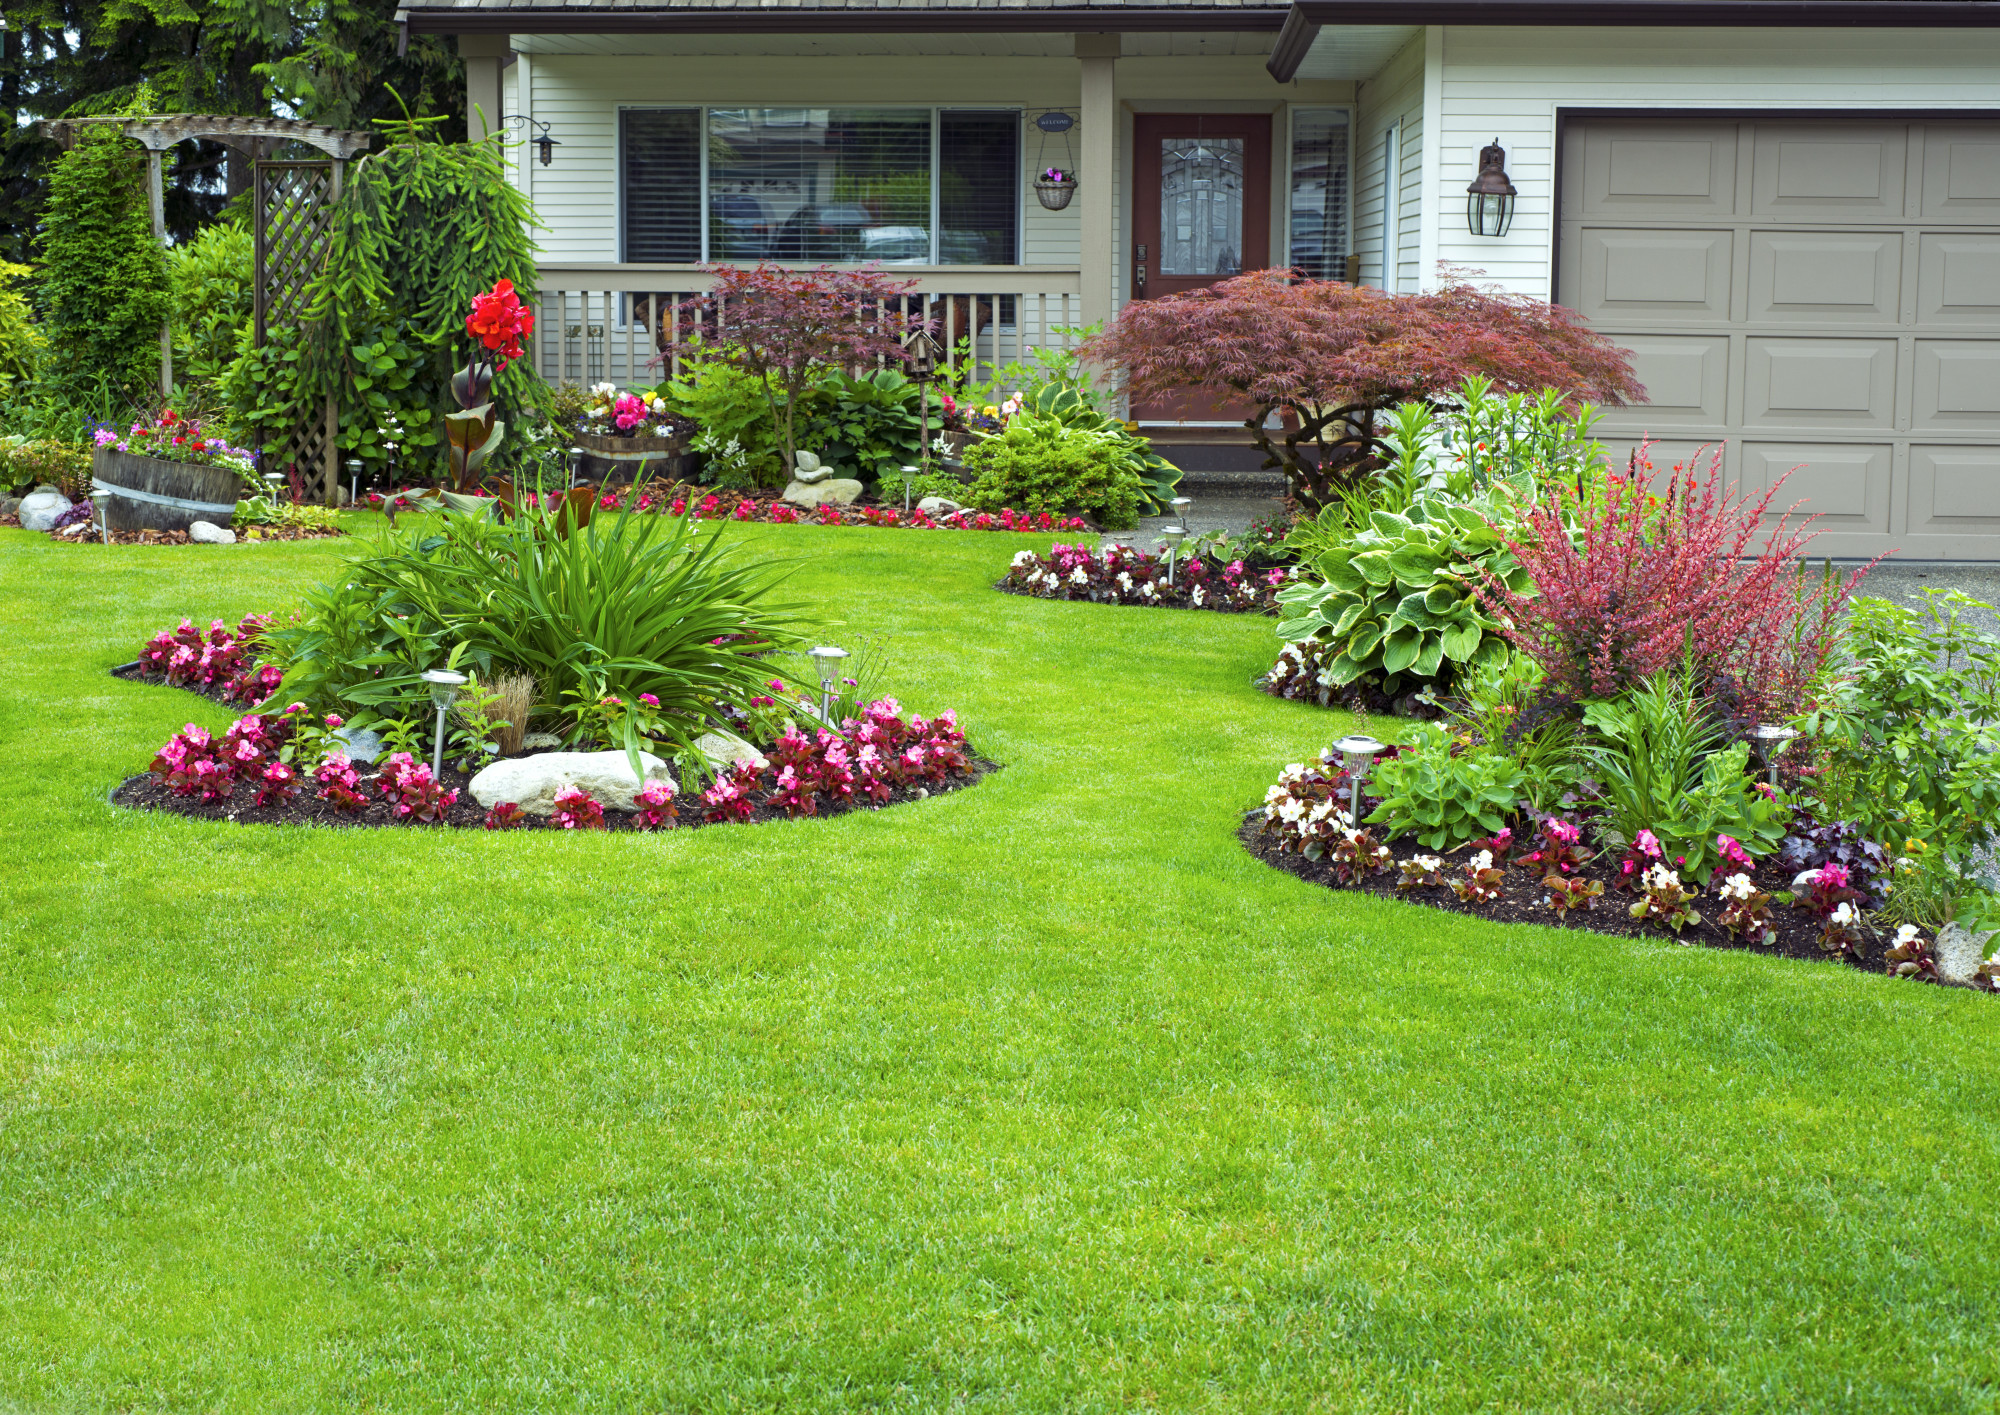 5 Landscaping Industry Trends to Watch